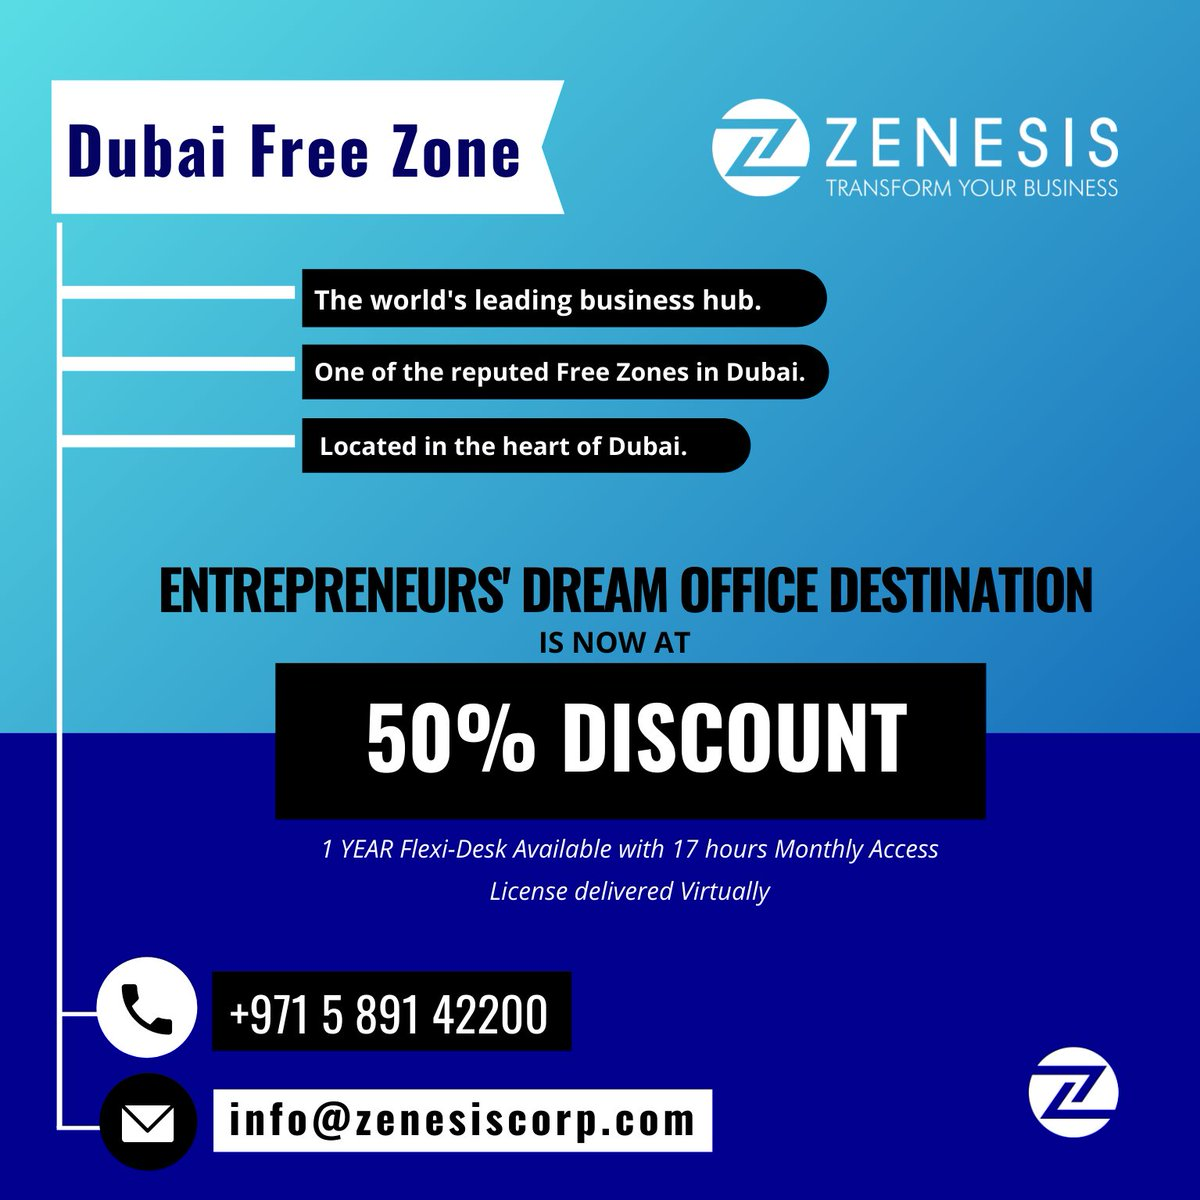 Your DREAM #OFFICE is now at 50% #Discount. Grab the limited seats today!   Contact your Zenesis business set-up experts +971 5 891 42200 l info@zenesiscorp.com  #Zenesiscorp #middleeast #Dubai #Business #Management #clients #jobs #careers #package #license  #positivity #goals https://t.co/0KXiG9gR1V